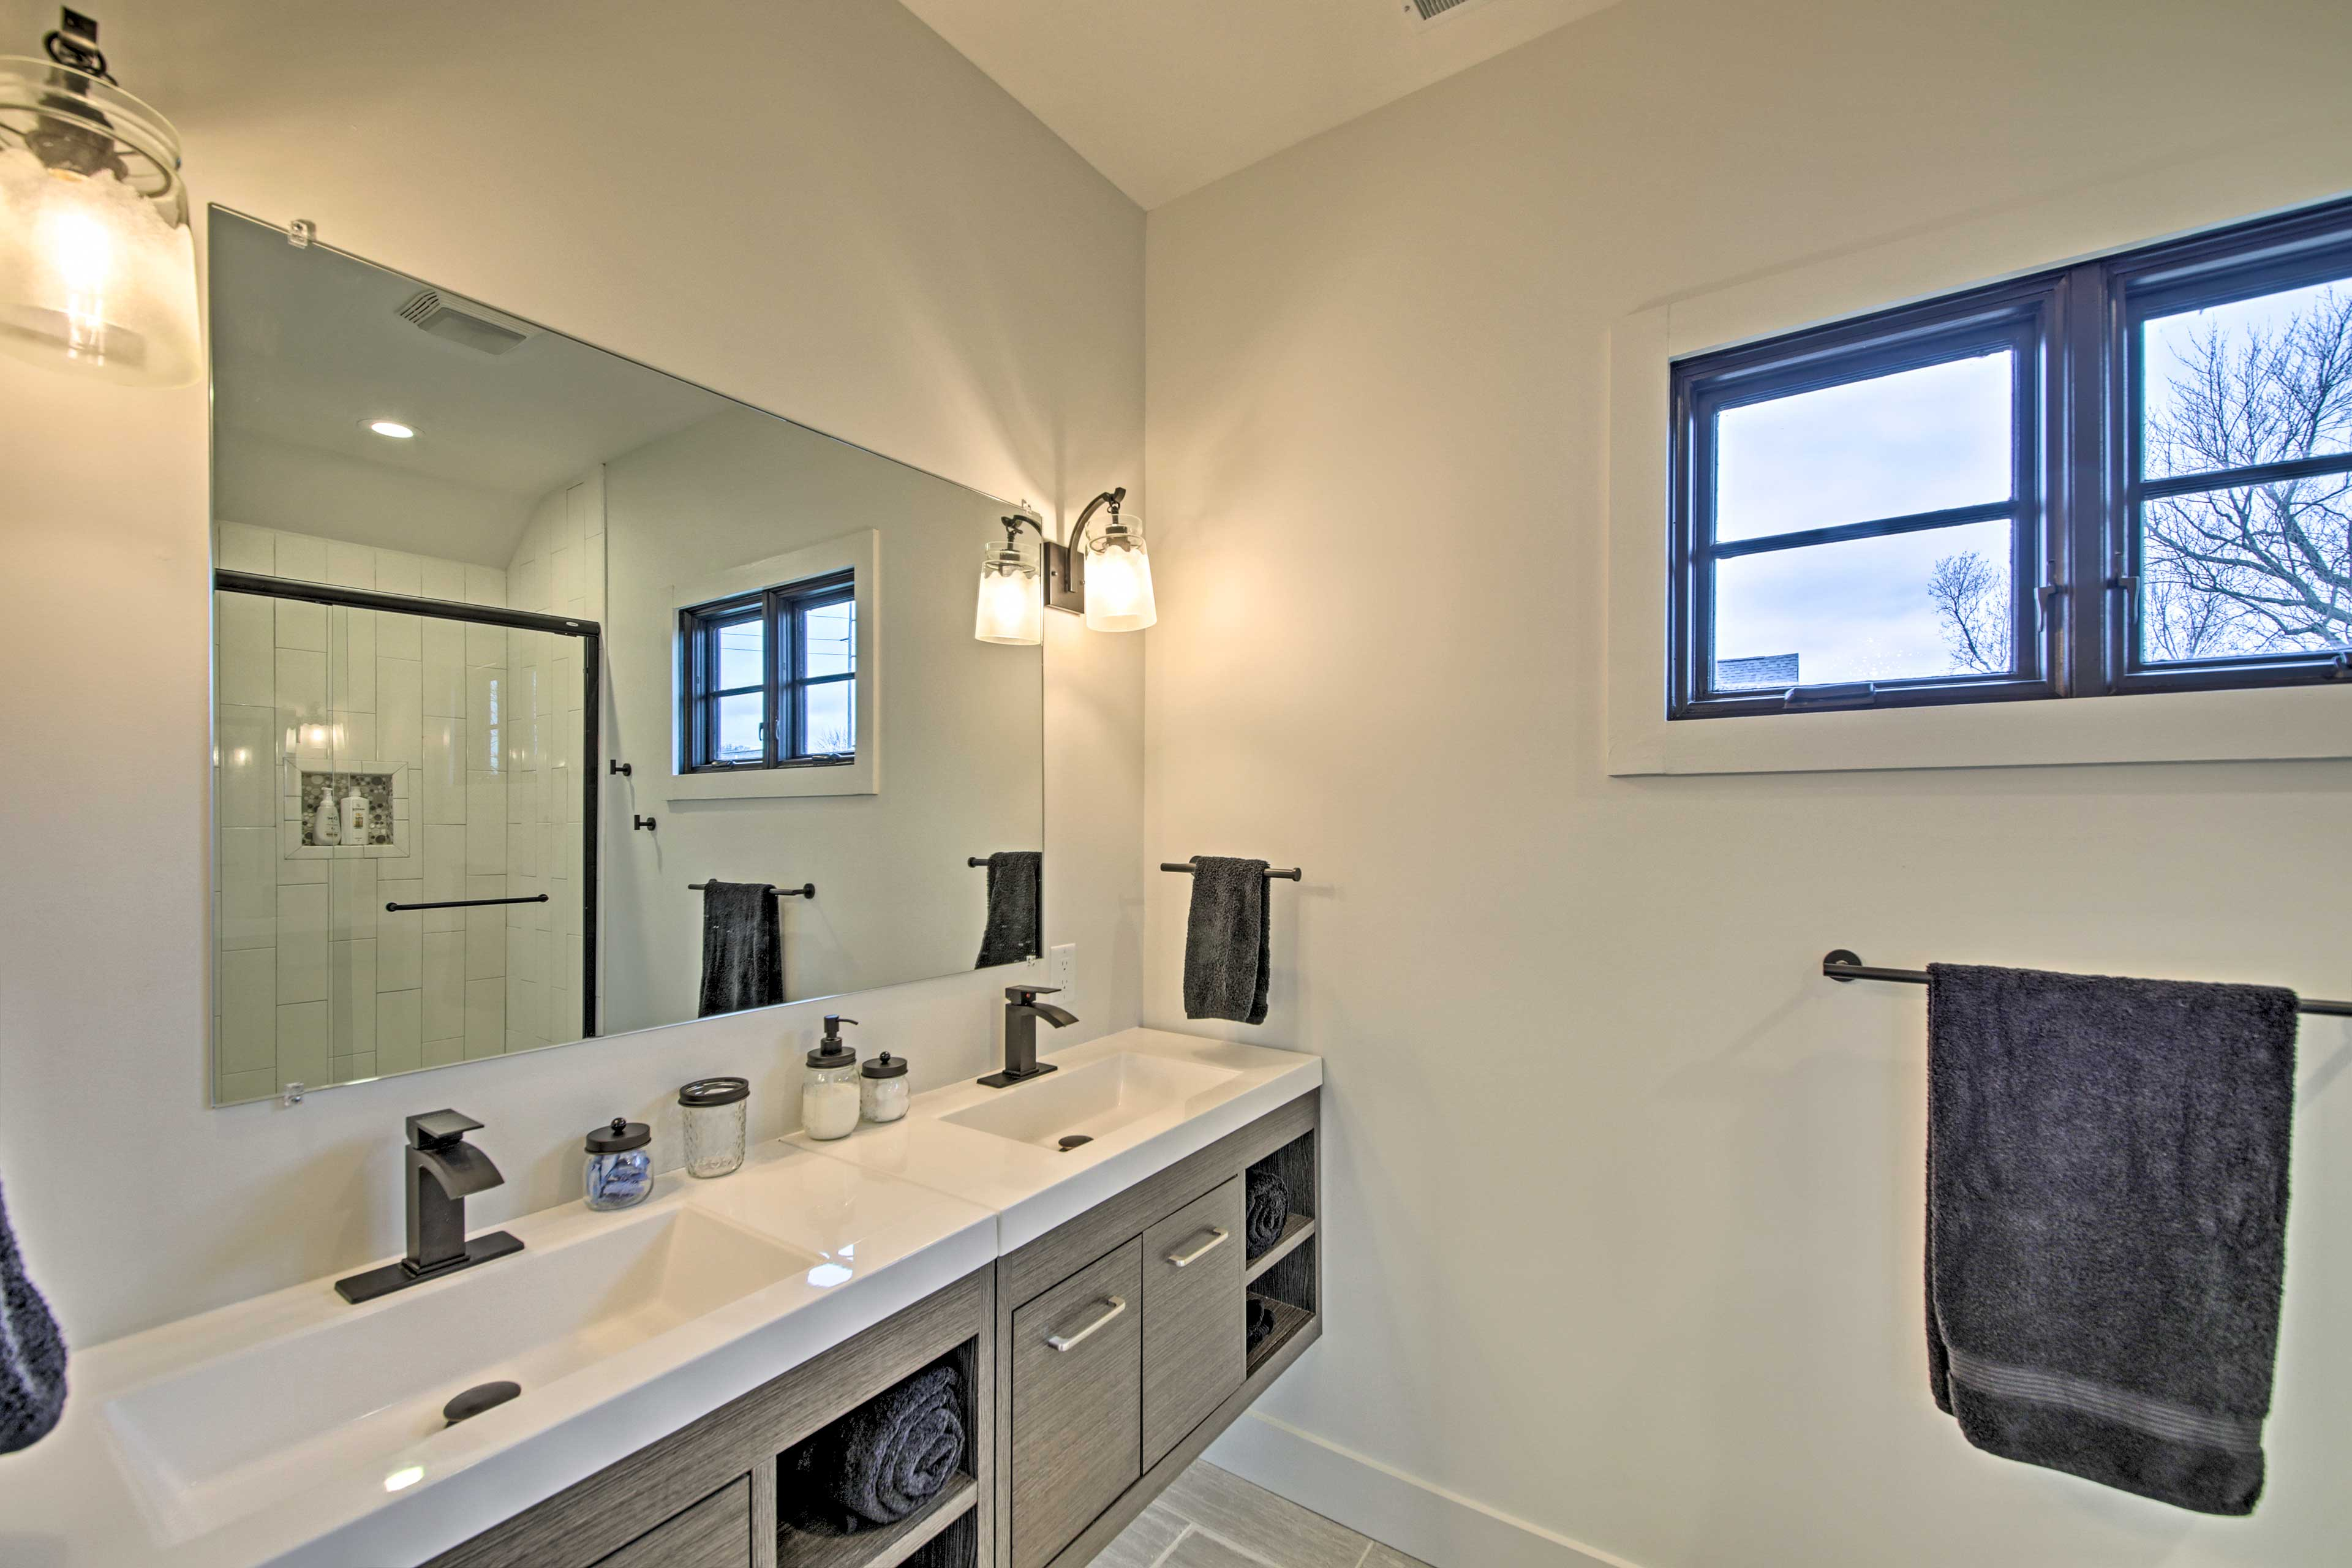 Get ready for the day at the bright bathroom vanity.